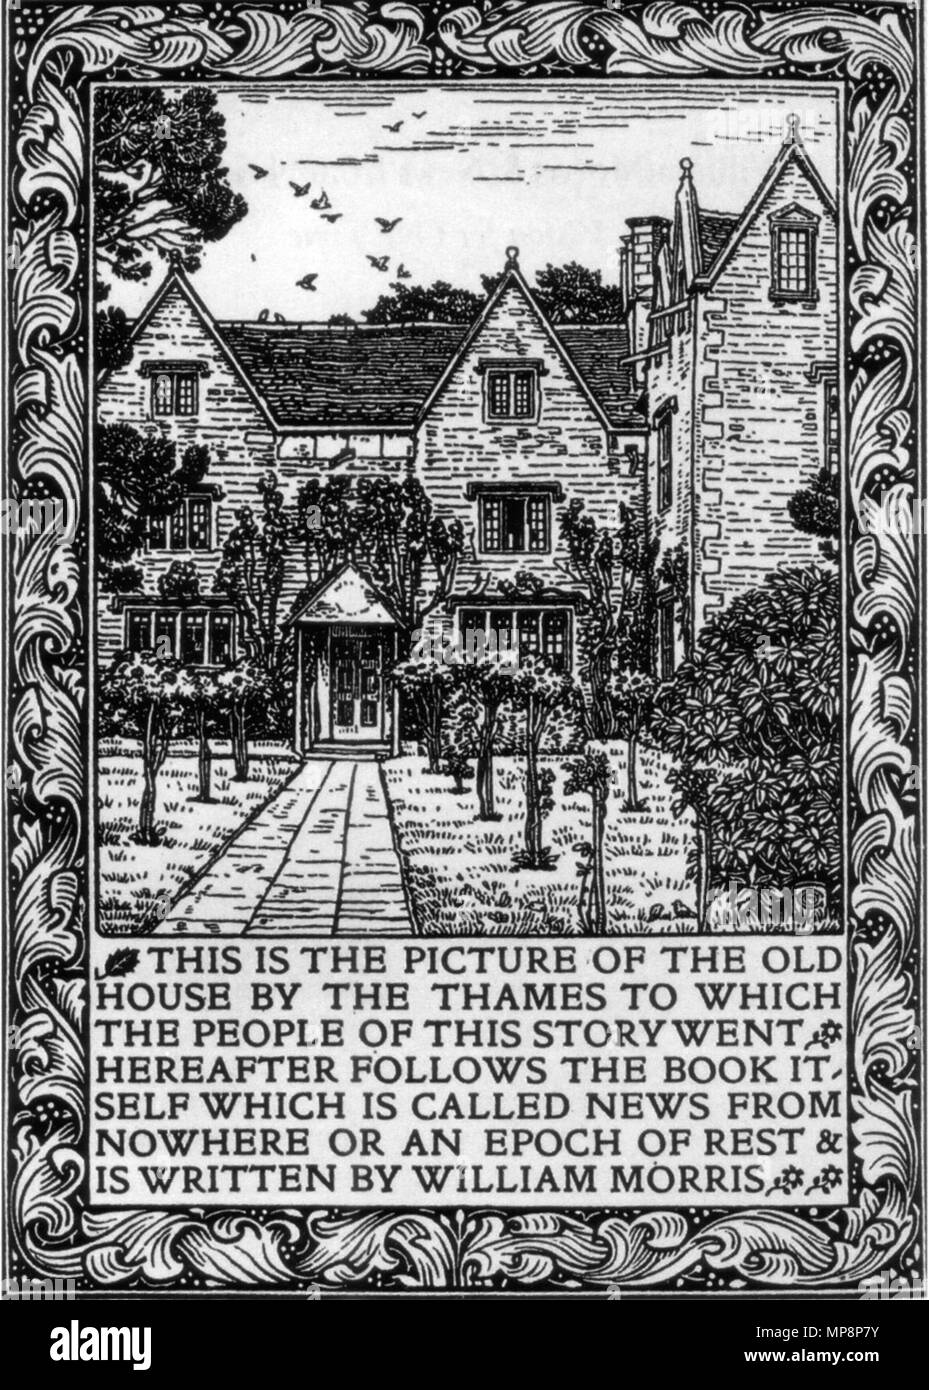 . English: Kelmscott Manor depicted in the frontispiece to the 1893 Kelmscott Press edition of William Morris's News from Nowhere . 1893.   William Morris  (1834–1896)       Alternative names William M. Morris  Description British painter, designer, architect and writer  Date of birth/death 24 March 1834 3 October 1896  Location of birth/death Walthamstow (Essex) London-Hammersmith  Work location Deutsch: Südengland English: Southern England  Authority control  : Q182589 VIAF: 22146194 ISNI: 0000 0001 2123 5747 ULAN: 500030629 LCCN: n78095326 NLA: 35363838 WorldCat 762 Kelmscott Manor News fro - Stock Image